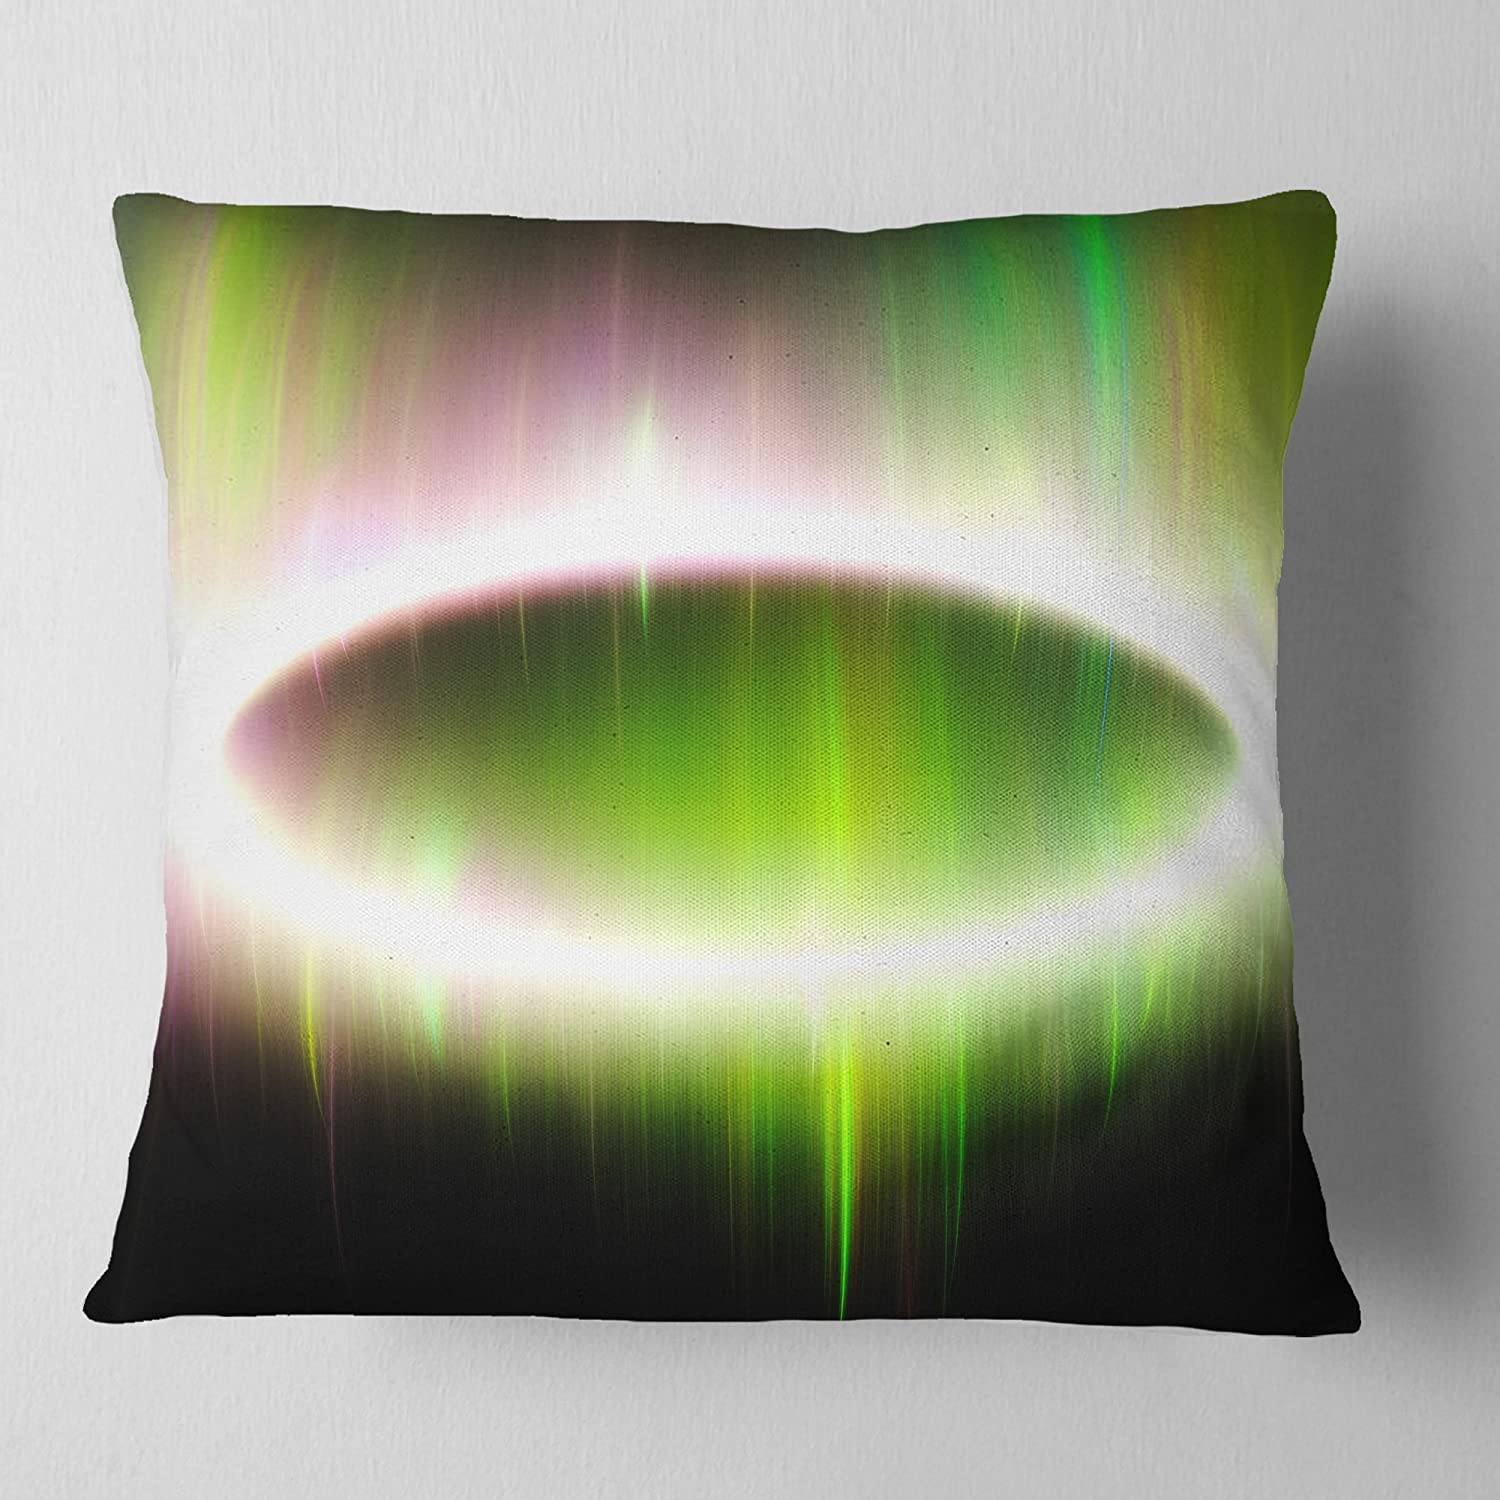 Designart CU16141-18-18 Beautiful Green Northern Lights' Abstract Cushion Cover for Living Room, Sofa Throw Pillow 18 in. x 18 in. in, Insert Printed On Both Side